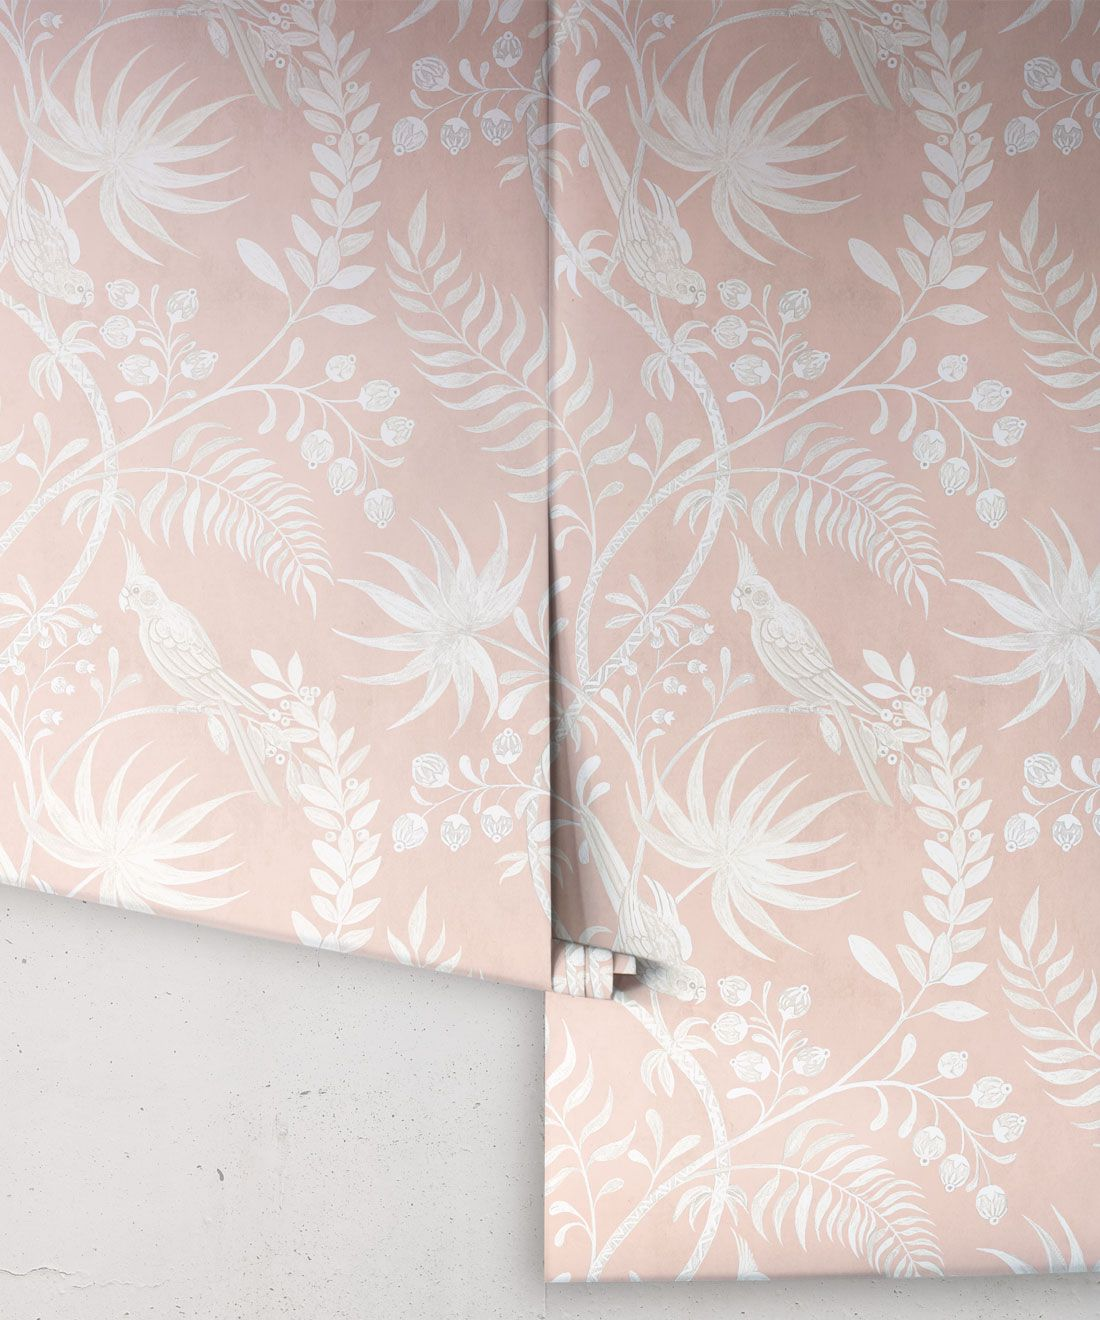 Tropicana Wallpaper • Dusty Pink • Rolls